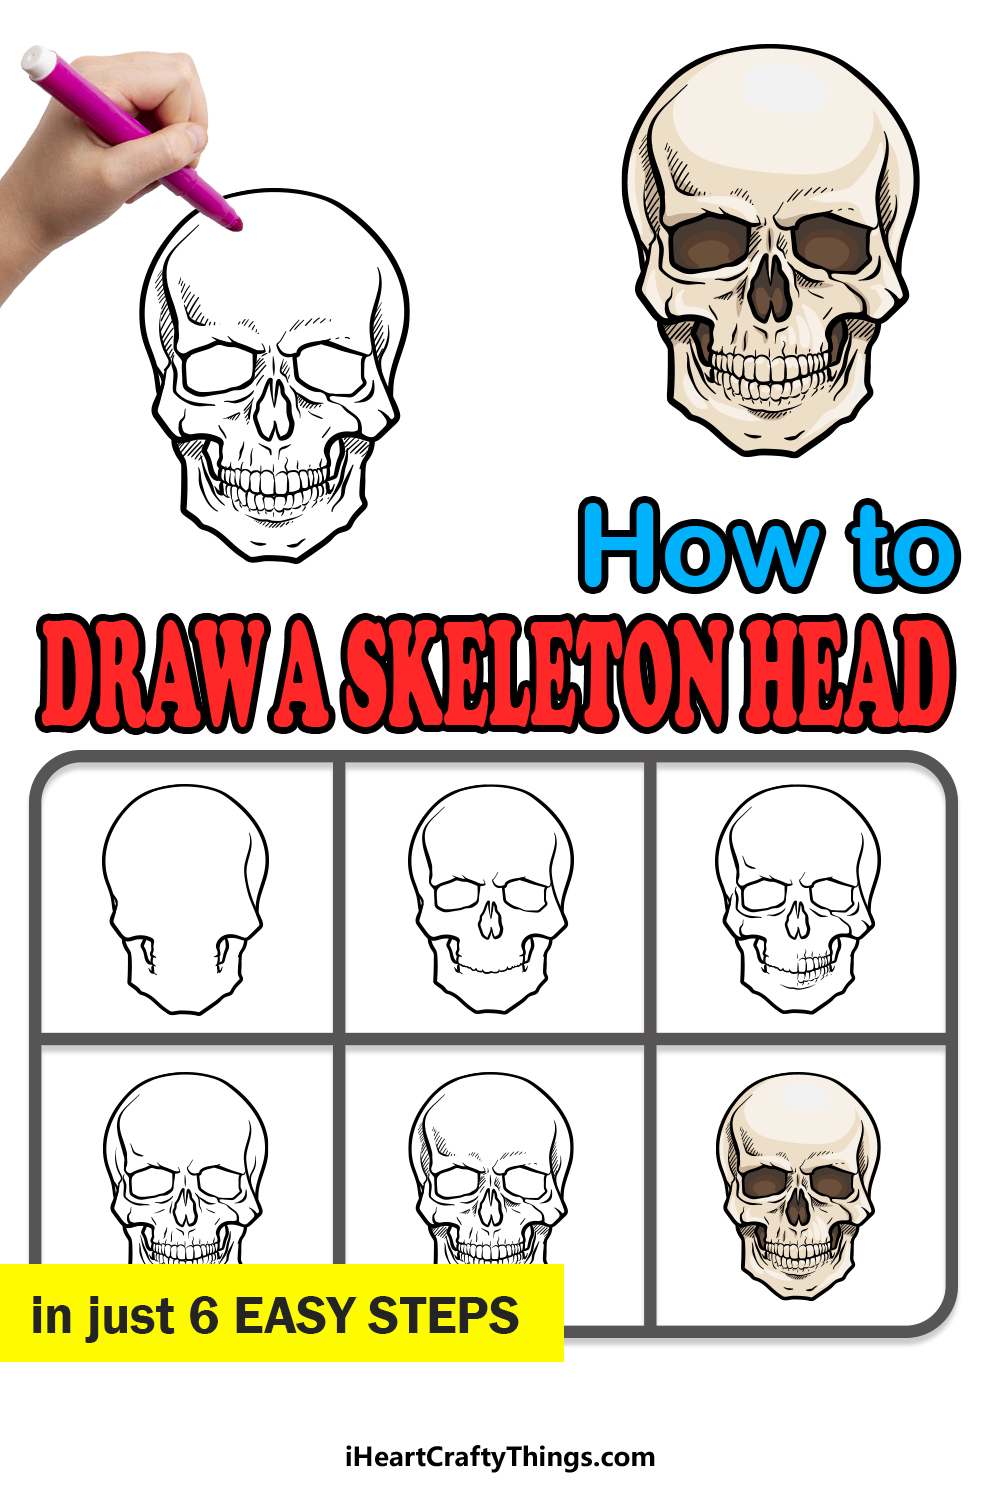 how to draw a skeleton head in 6 easy steps